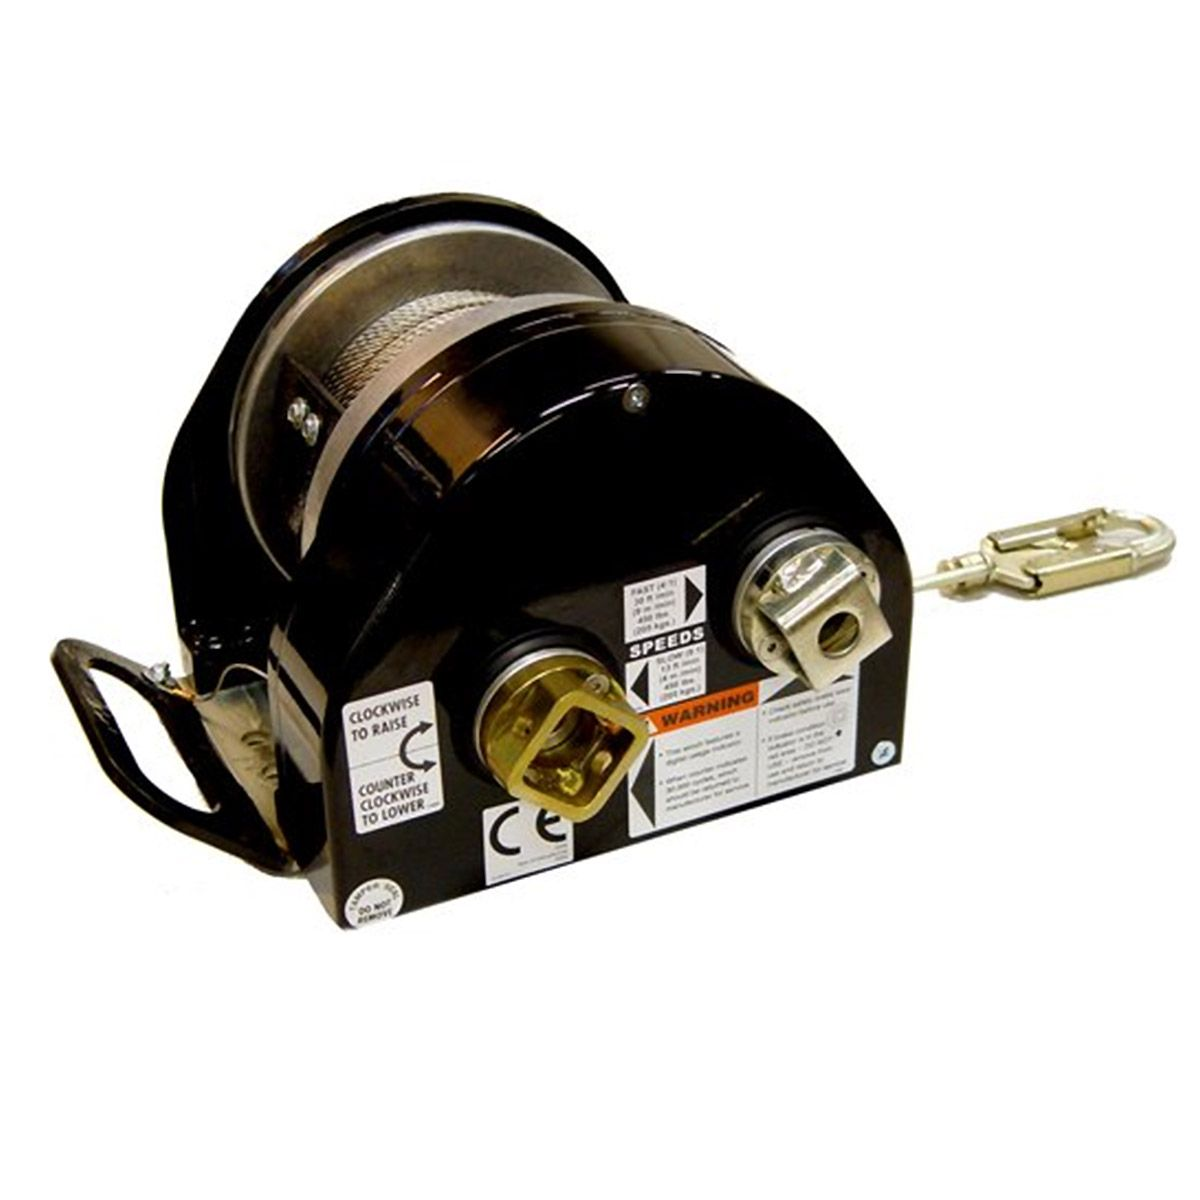 DBI SALA Advanced Winch - Digital 200 Series - Power Drive